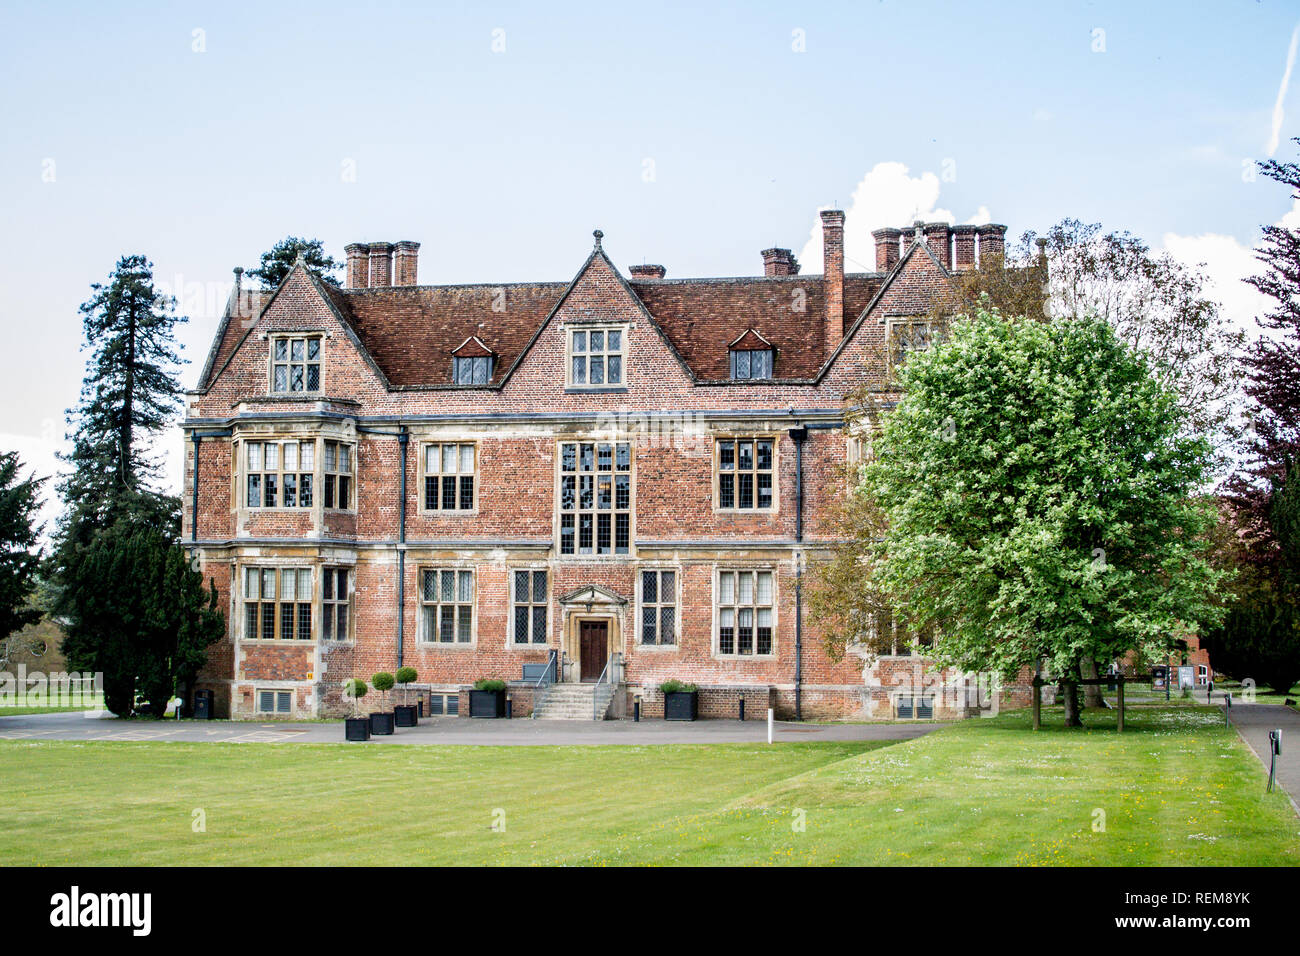 Side view of Elizabethan Manor, Shaw House, Near Newbury, Berkshire, England, completed in 1581 and now owned by the local council, free to visit. - Stock Image